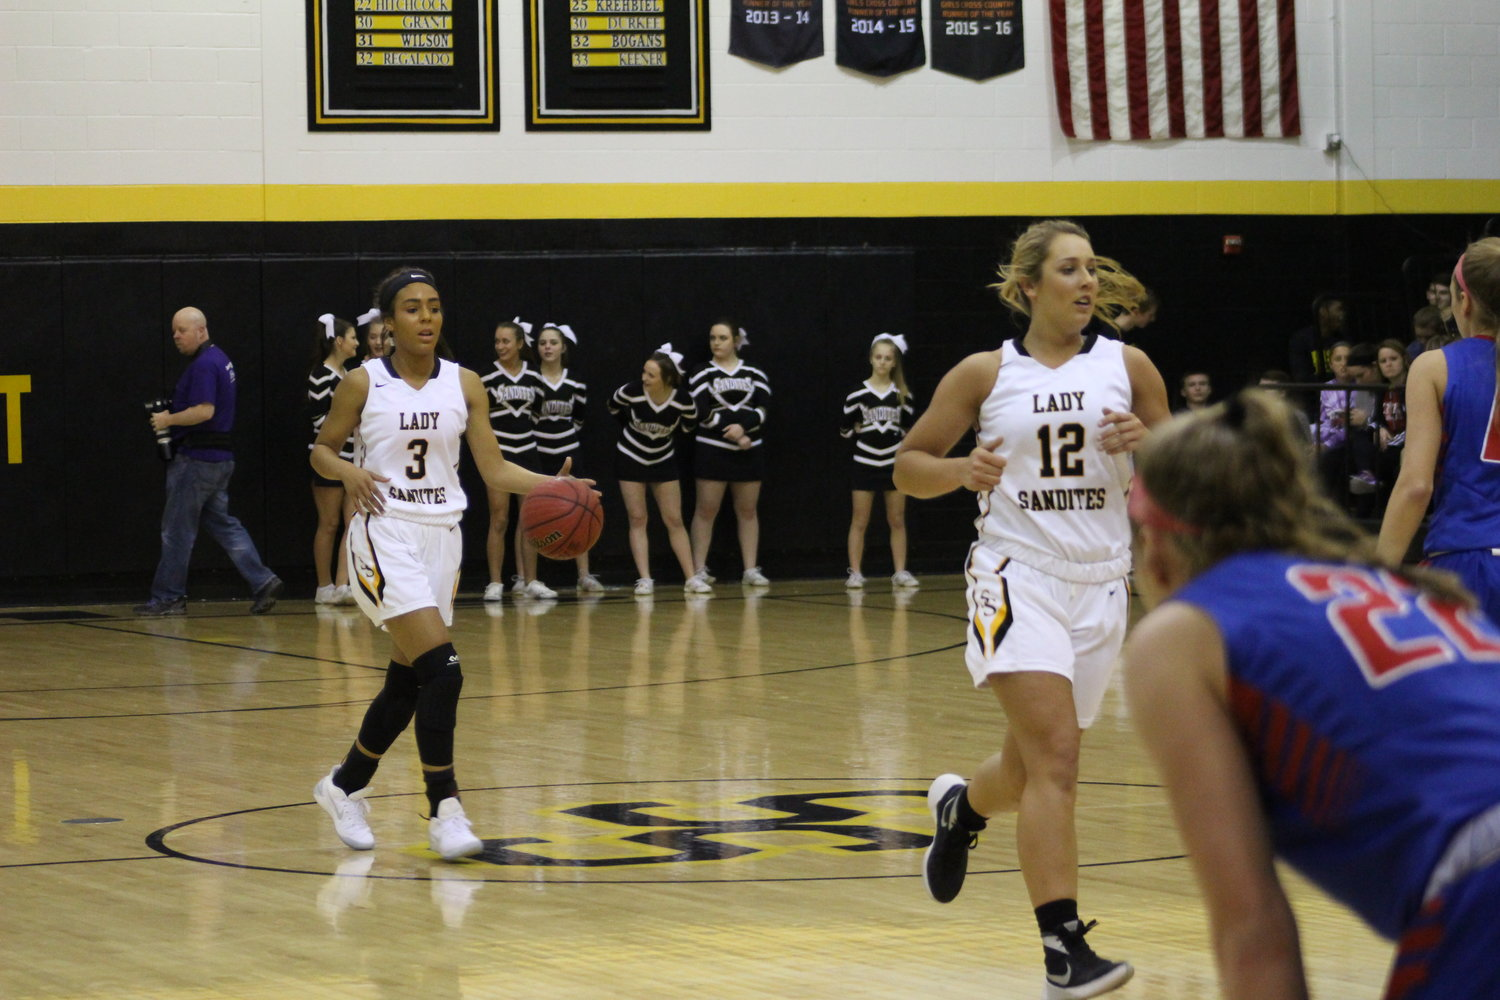 ad956d7f779 Oklahoma Girls High School Basketball: Week Nine Rankings and Predictions